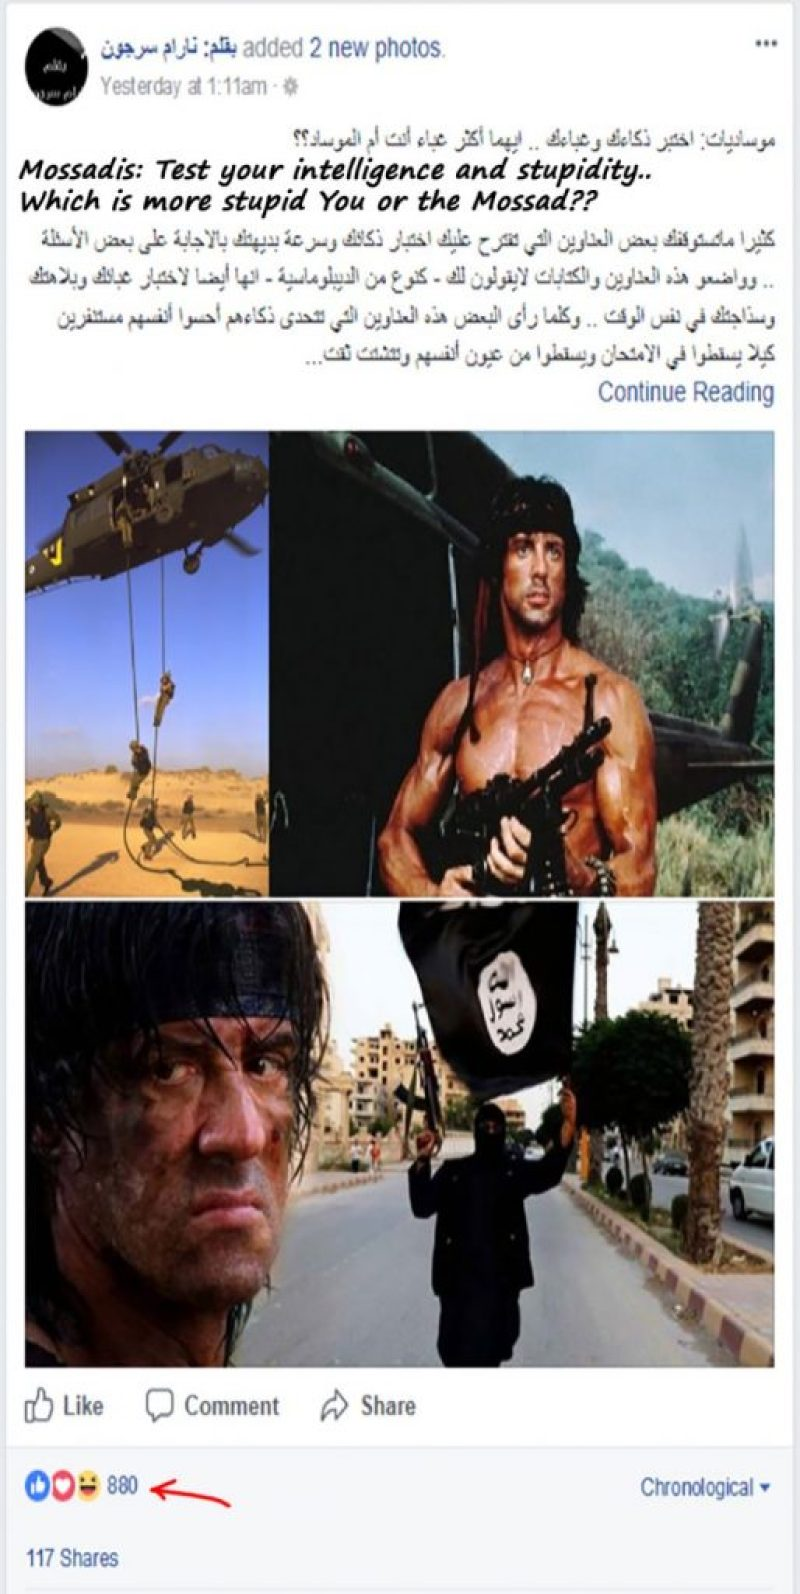 image-Mossad fairy tales - Who is more stupid?